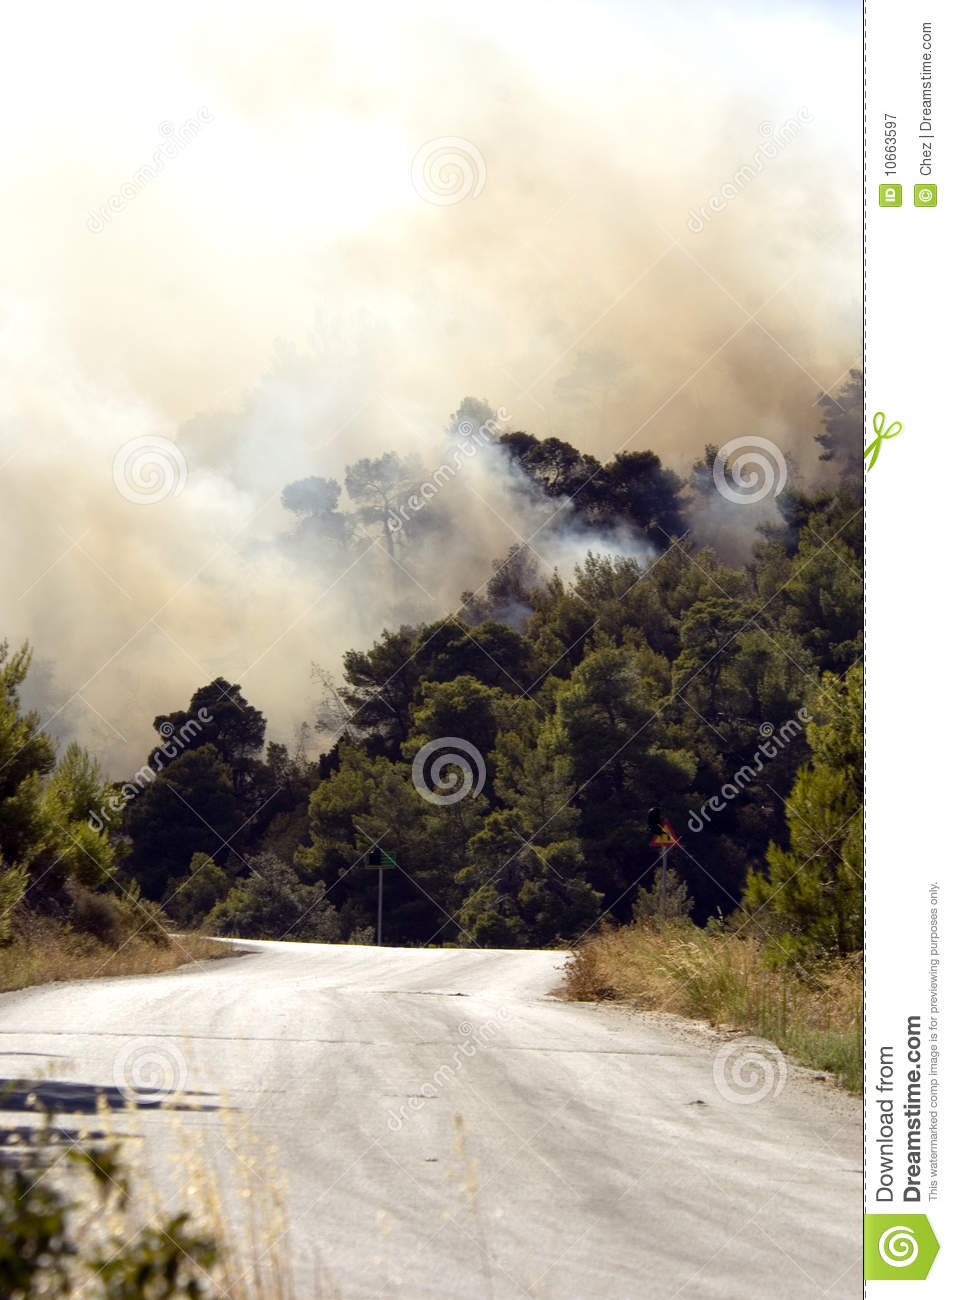 Fires broach road in Athens